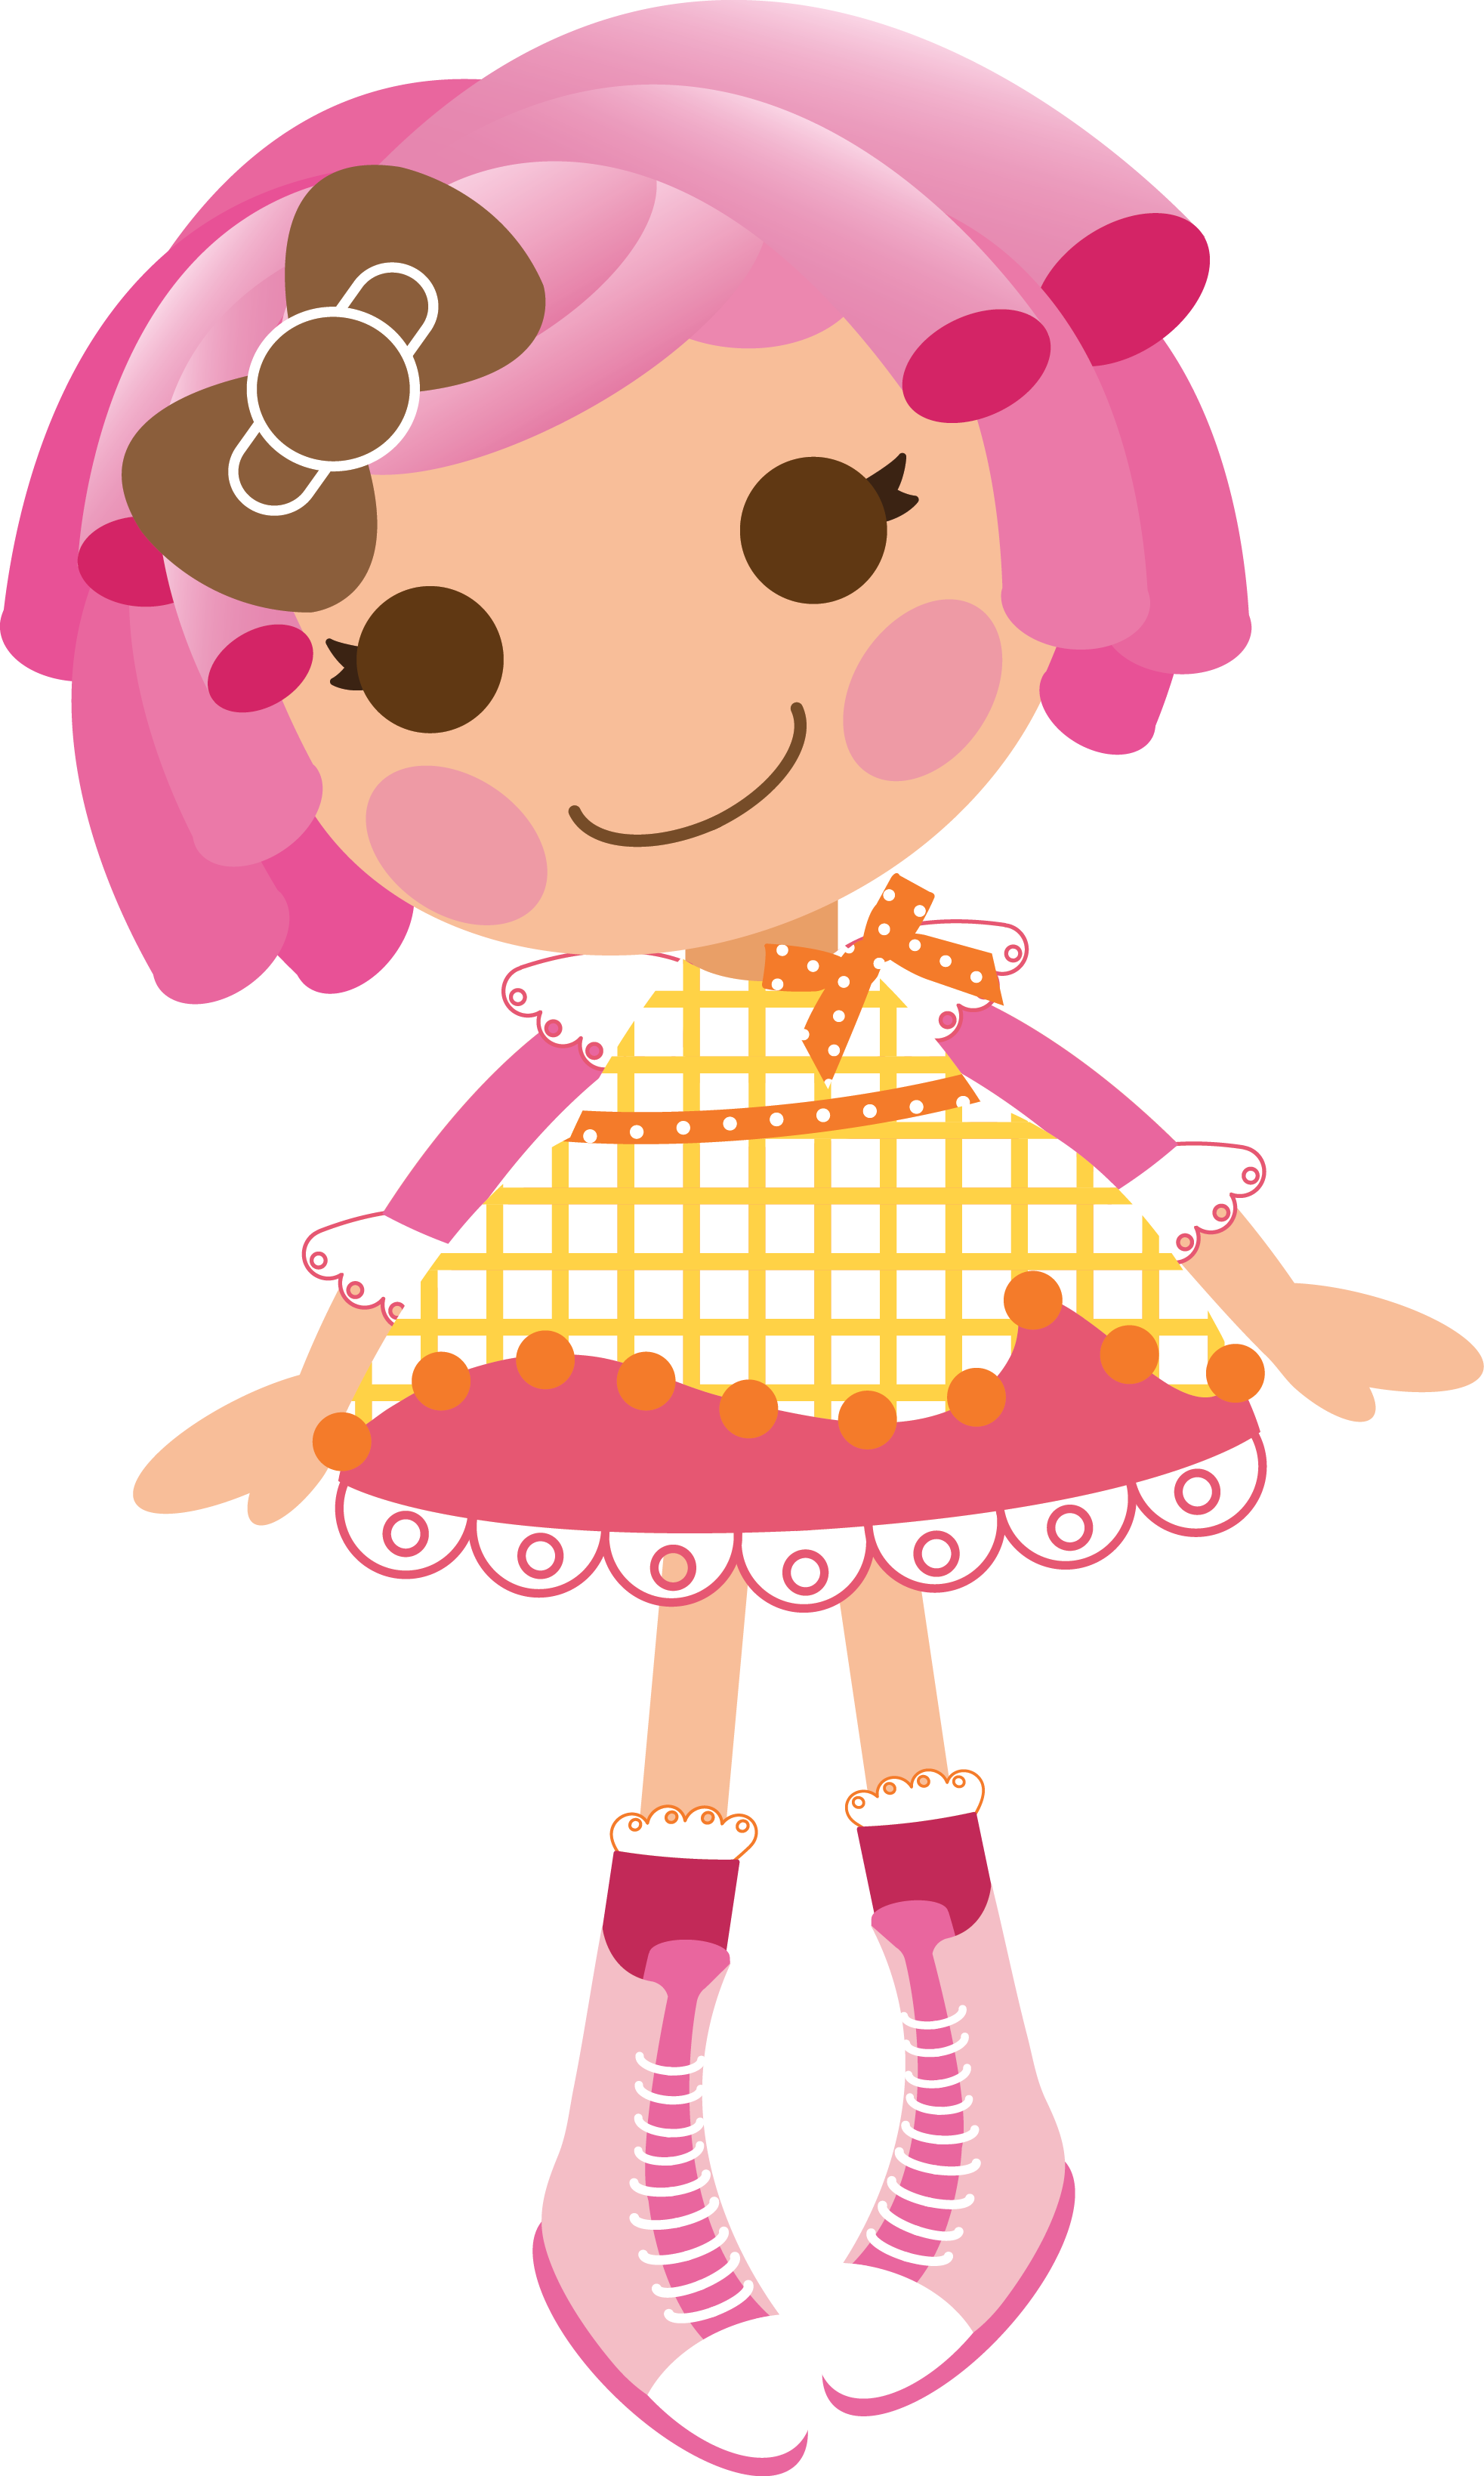 Cabbage patch baby birthday clipart png. Lalaloopsy printable party pinterest jpg